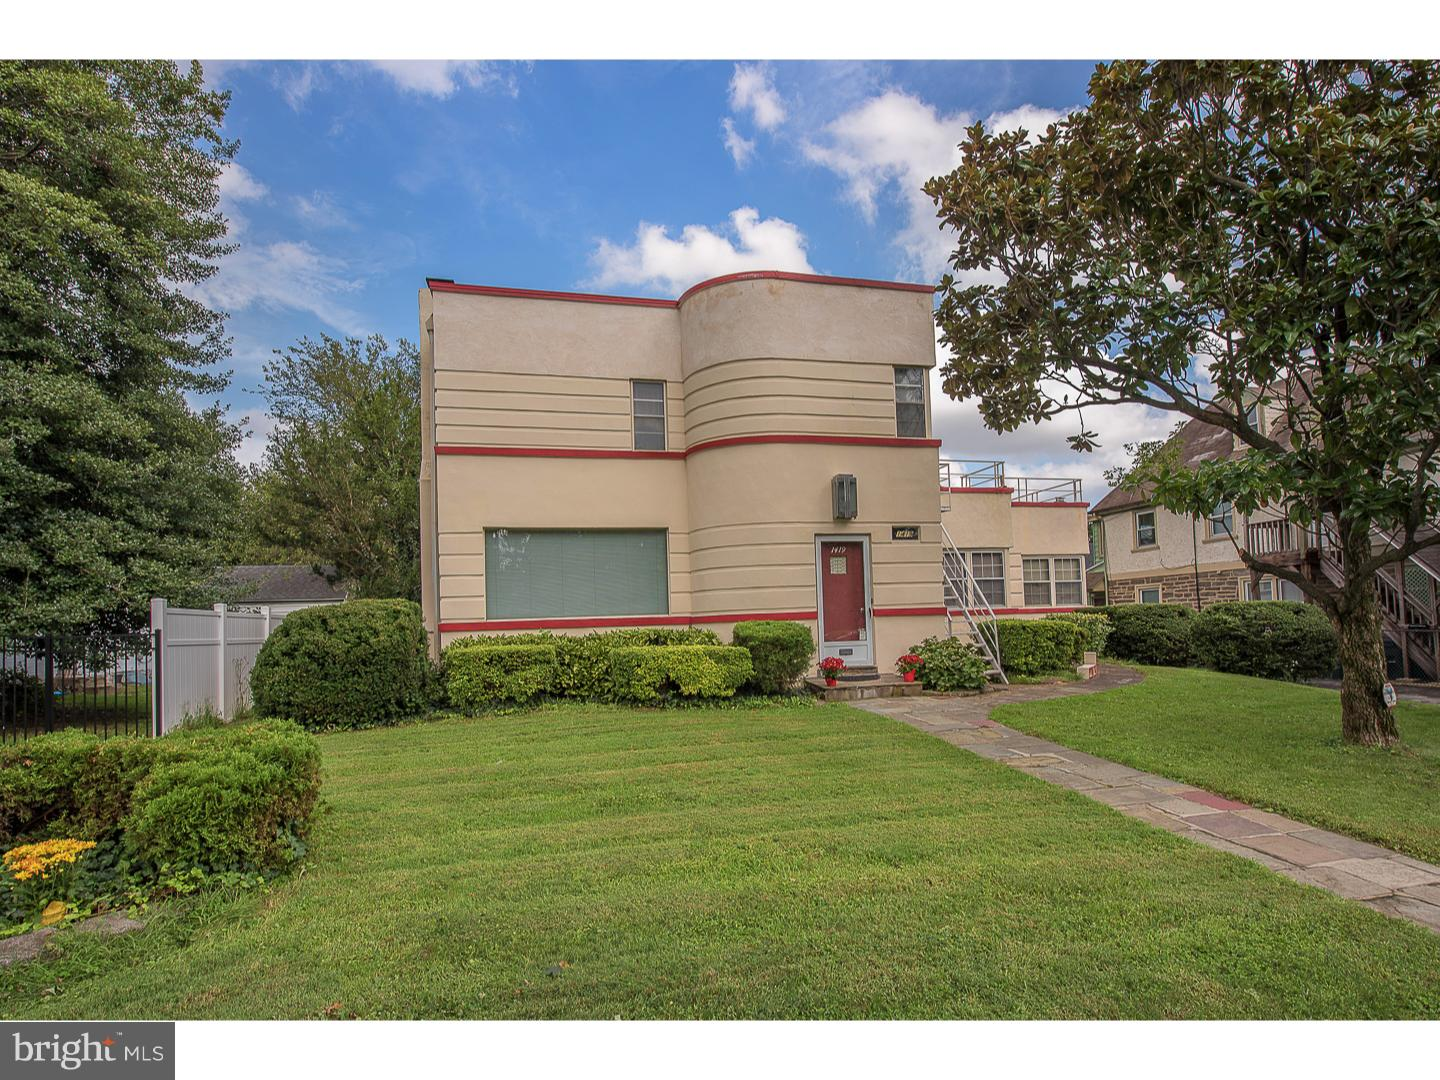 1419 Darby Road Havertown, PA 19083